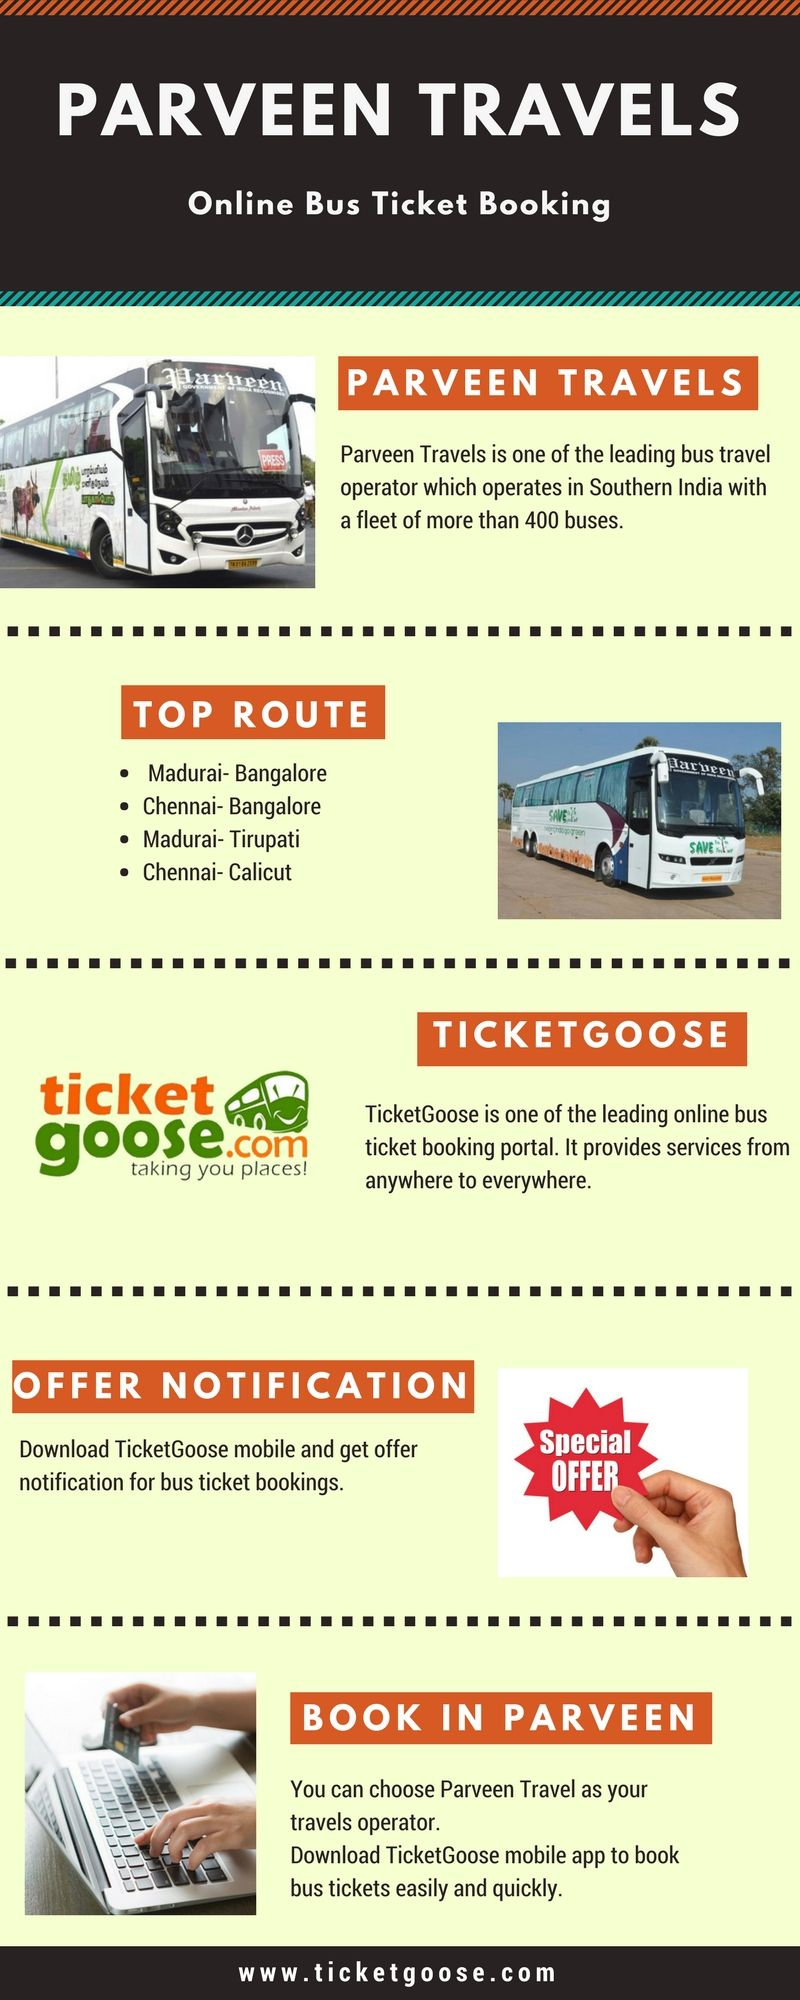 Pin By Ticketgoose On Parveen Travels Bus Travel Bus Tickets Travel